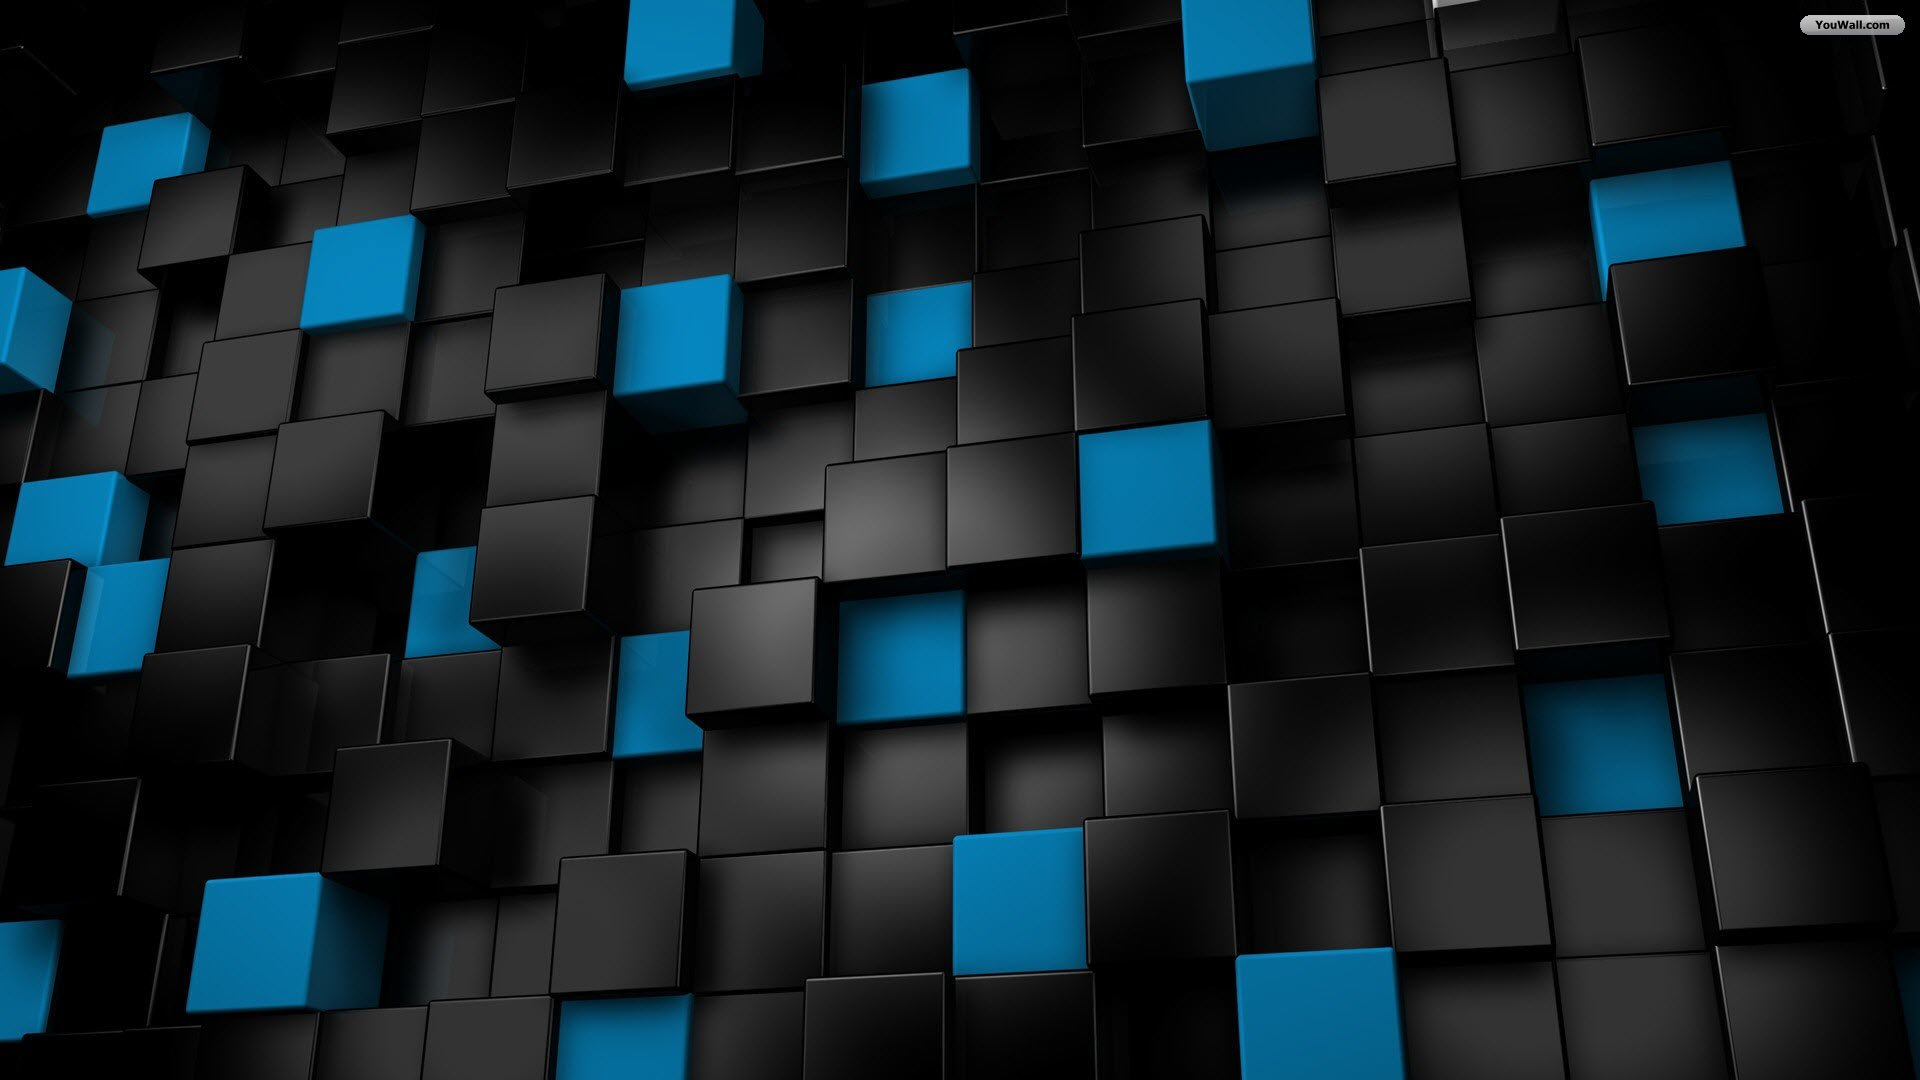 Download Black And Blue Cubes Wallpaper Full HD Wallpapers 1920x1080